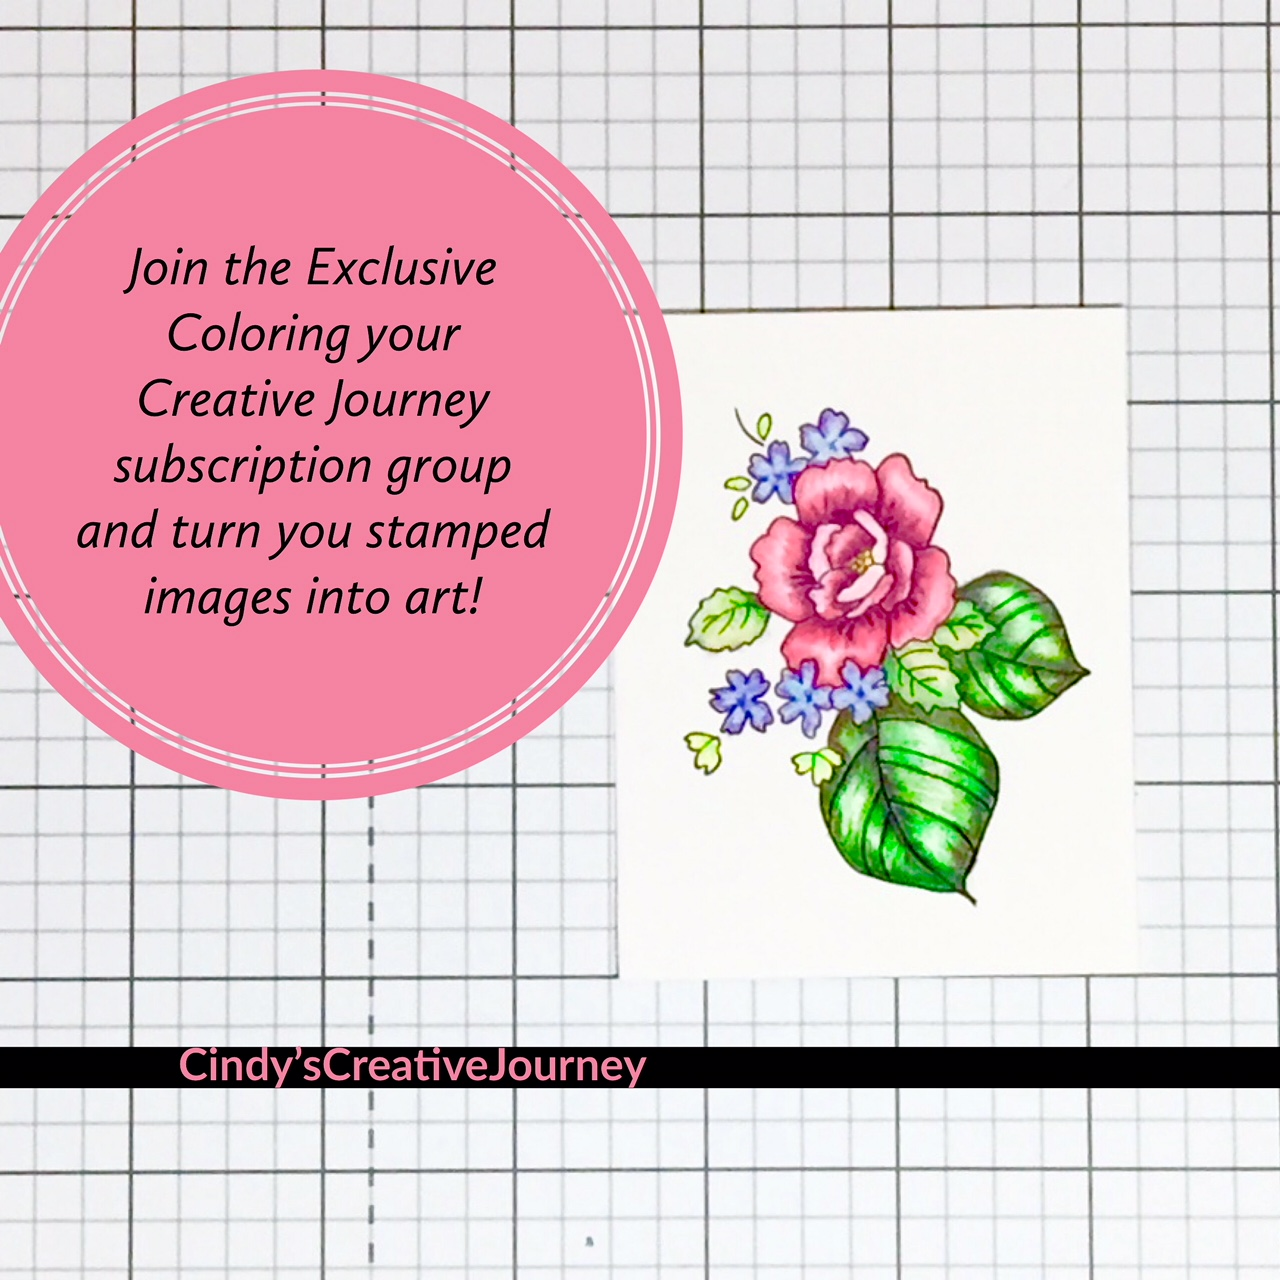 Coloring Your Creative Journey, an Exclusive Subscription Group